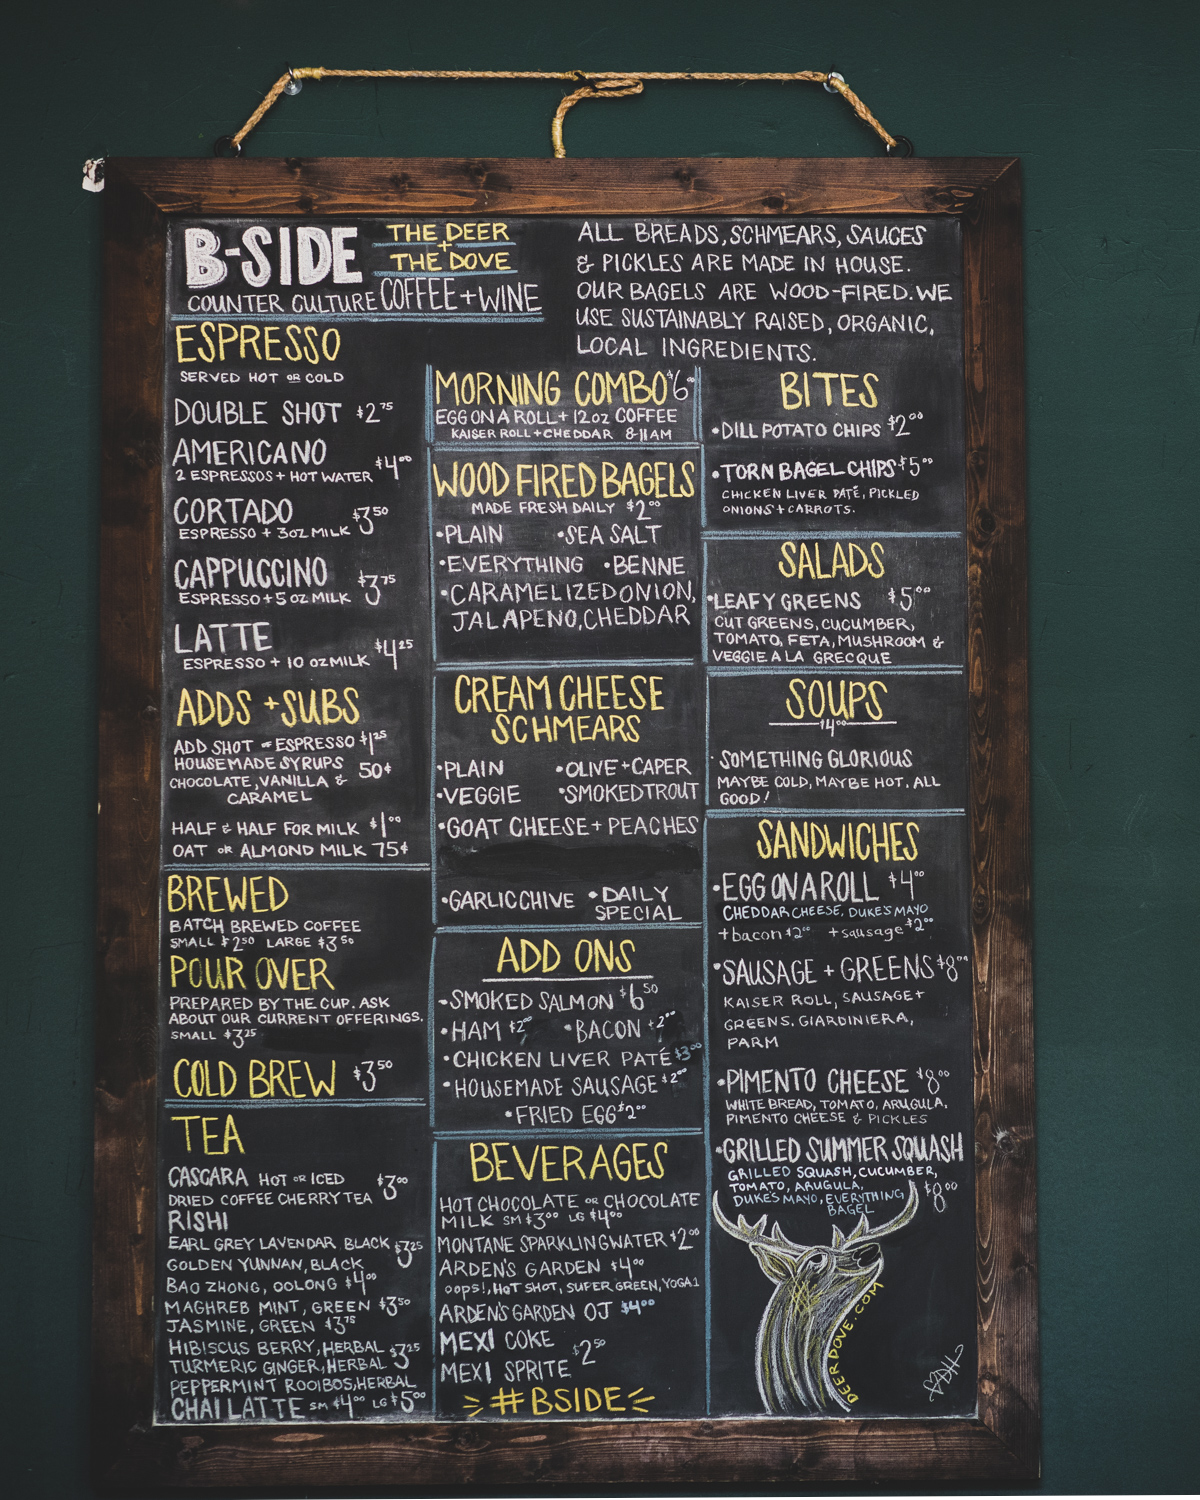 The chalkboard menu at the B-Side Cafe. Note: the menu changes frequently.